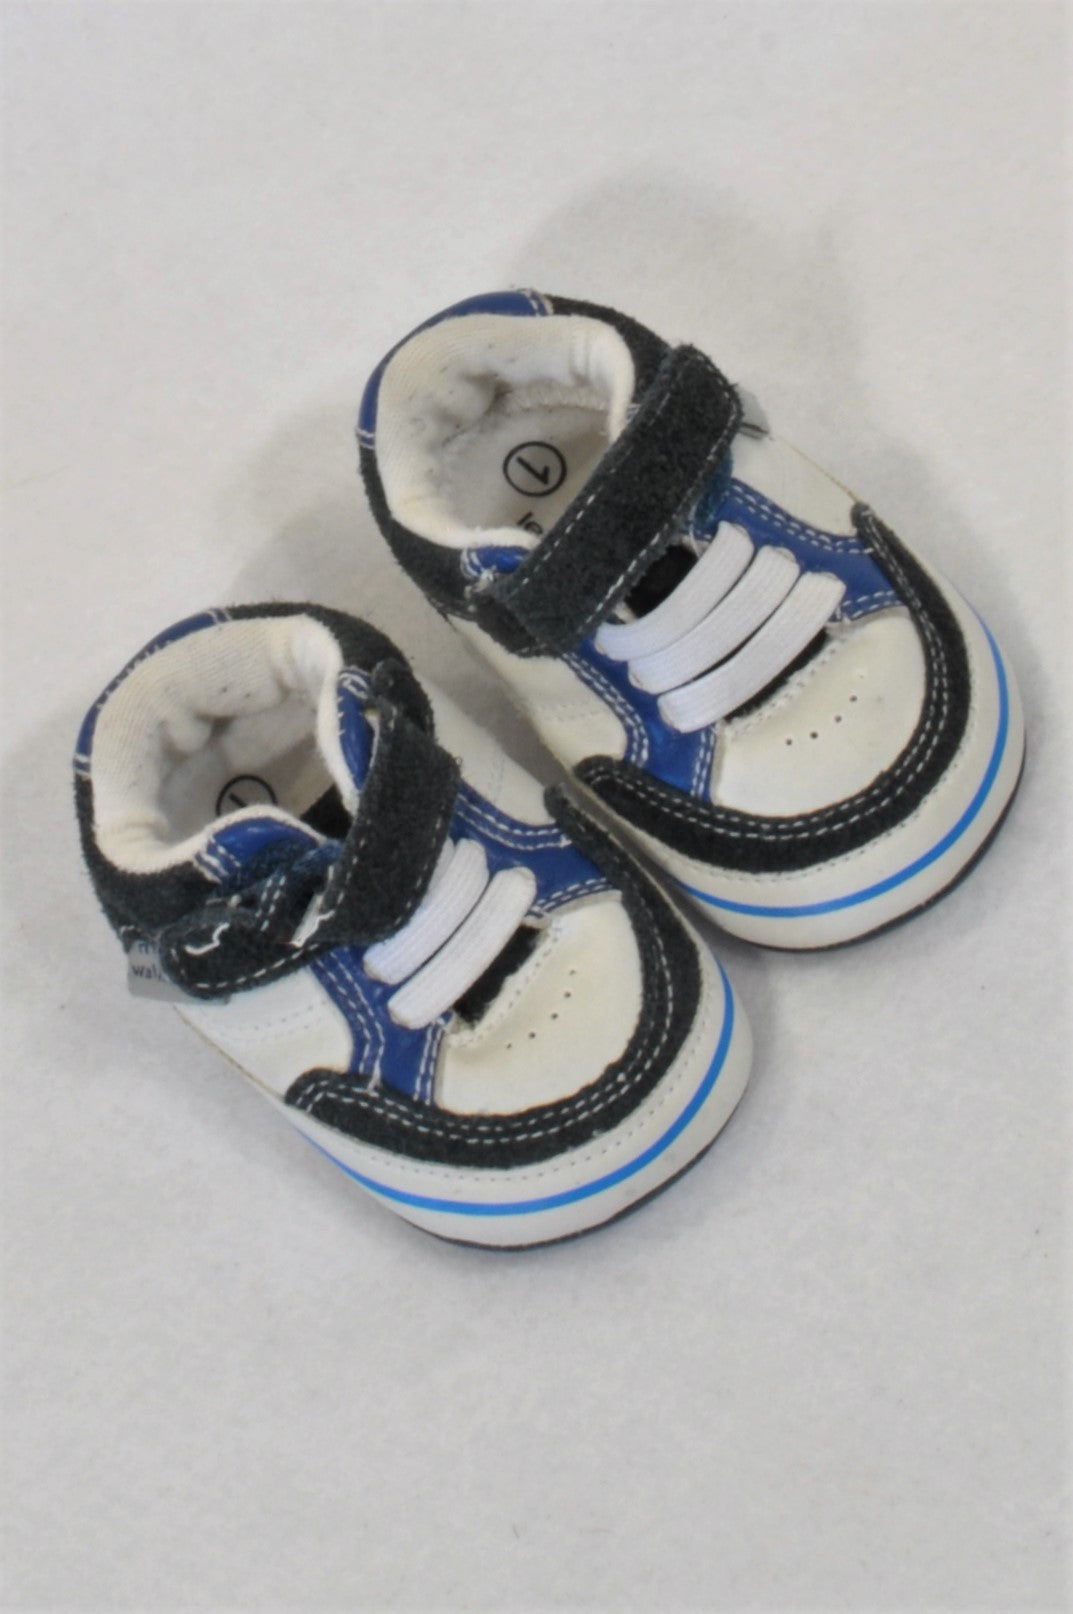 Woolworths Size 1 Grey & Blue Strap Takkie Shoes Boys 3-6 months